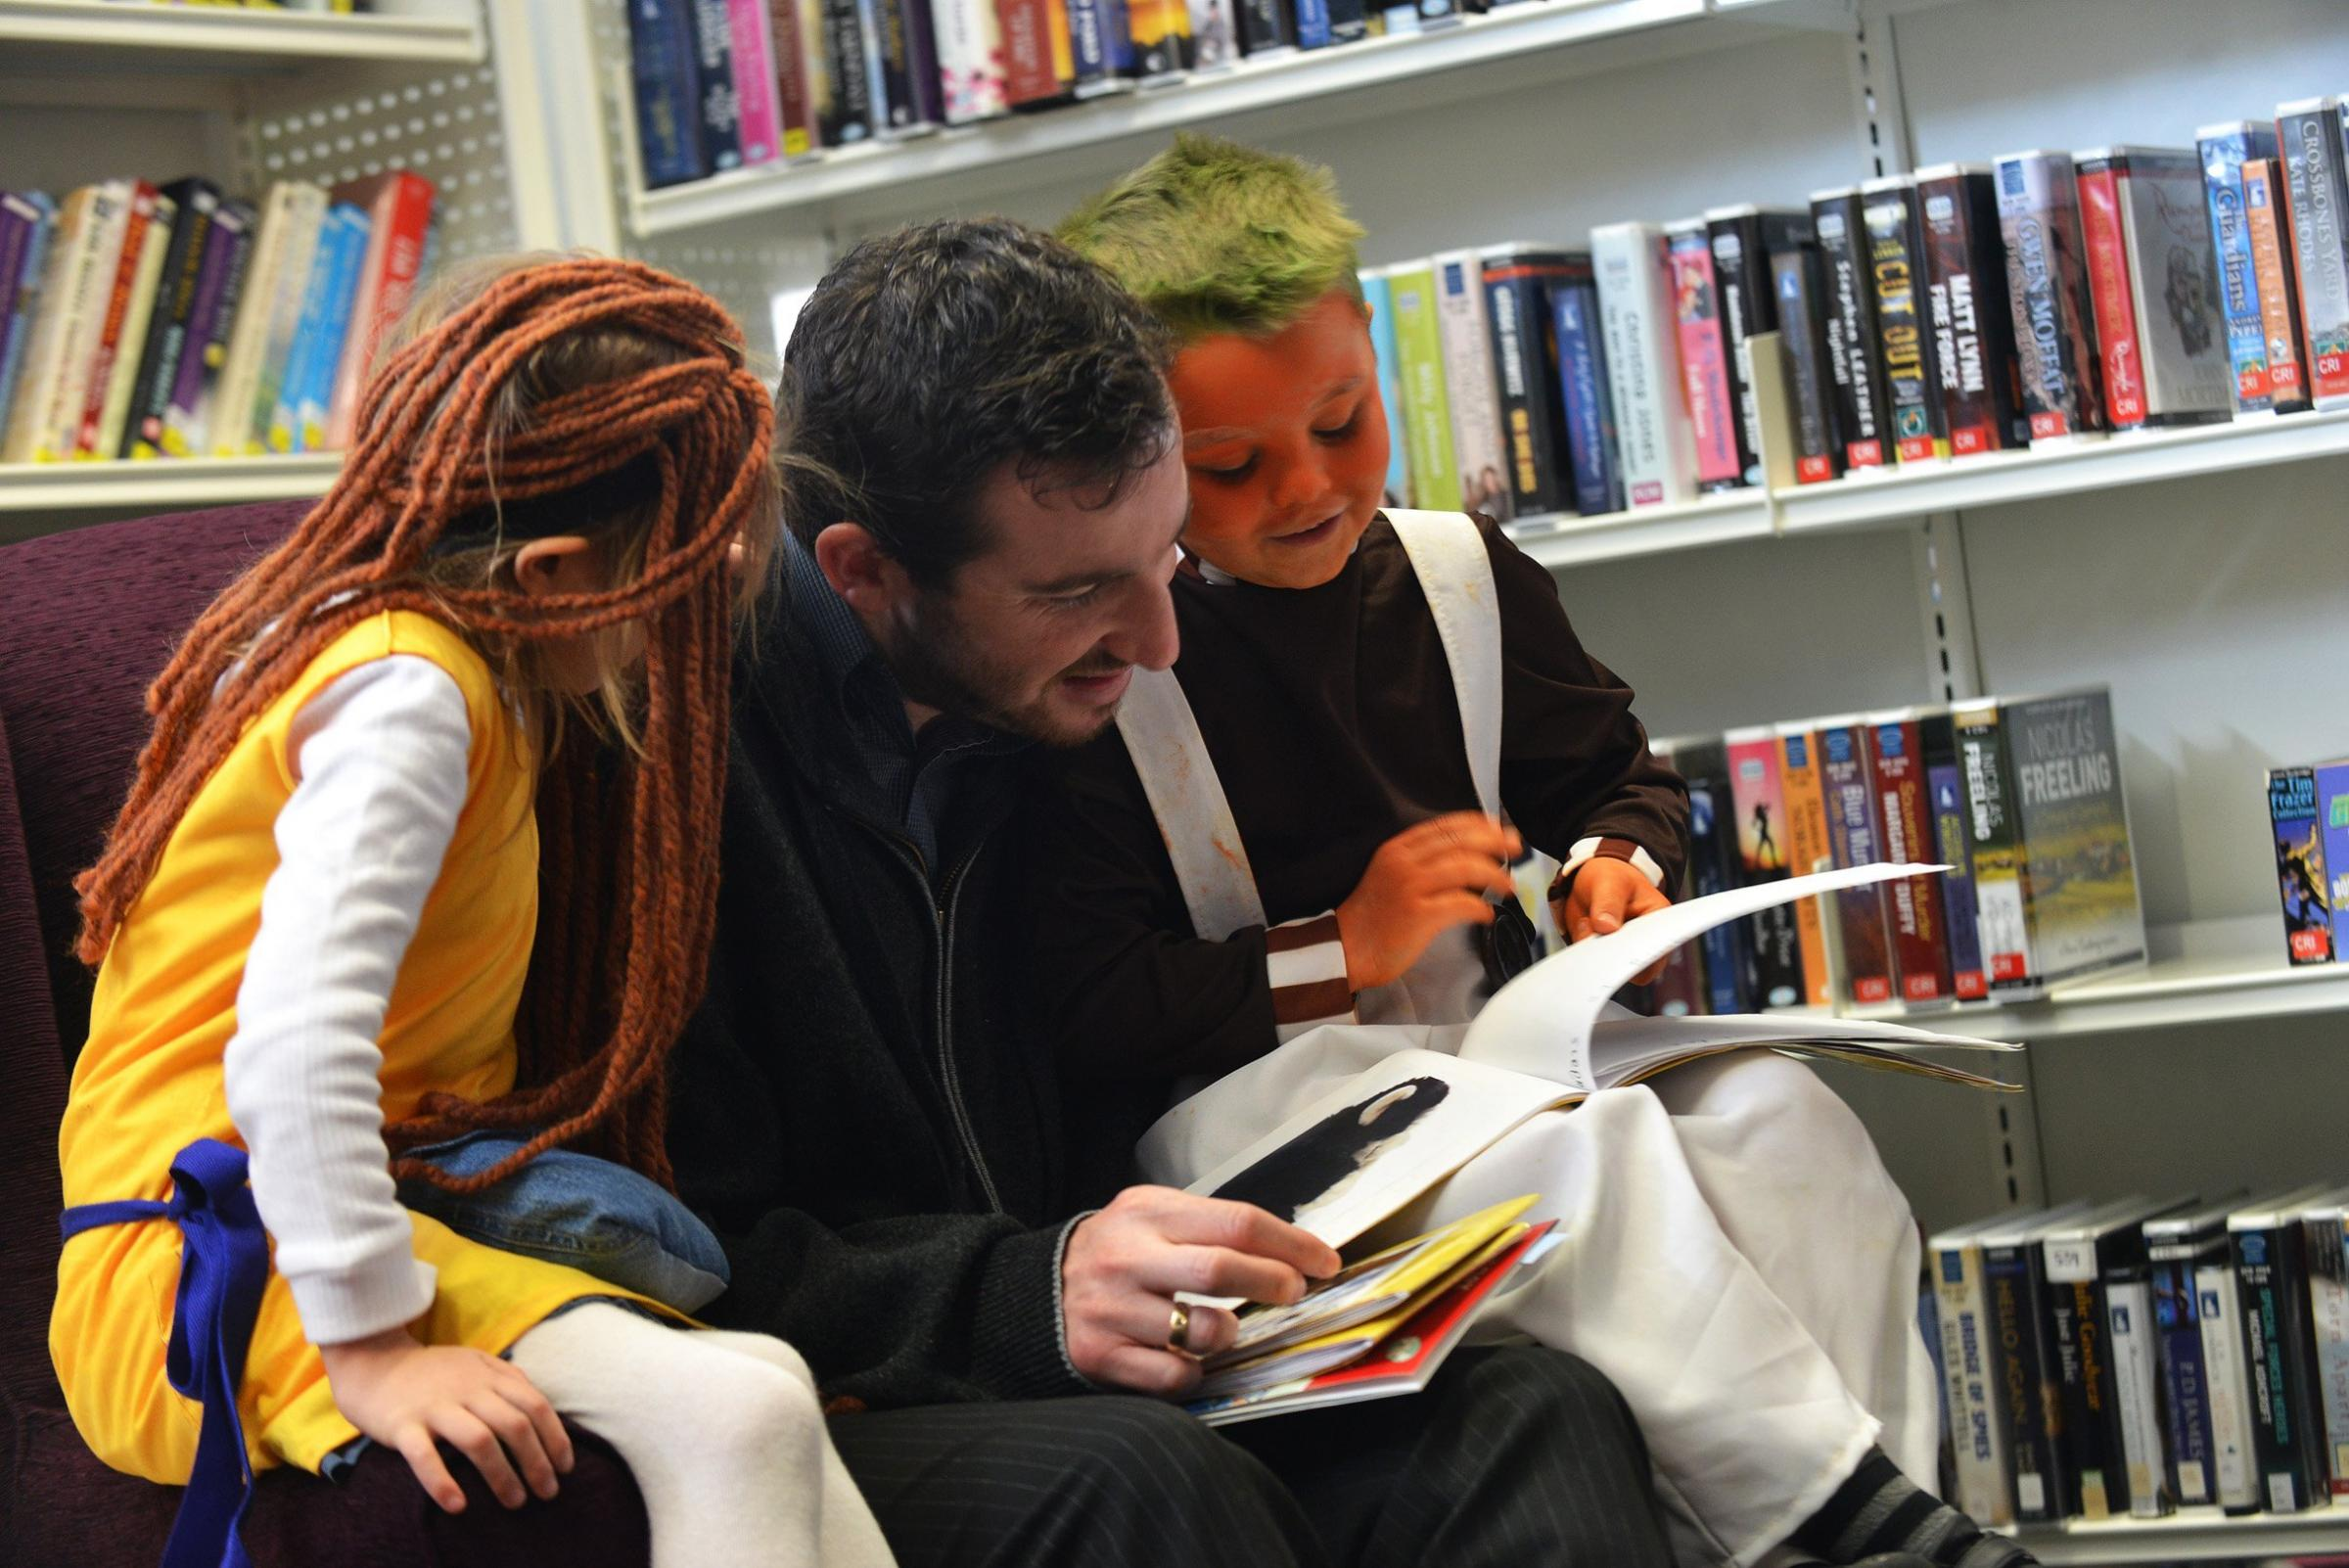 World Book Day encourages reading at libraries but it is feared new charges could discourage families